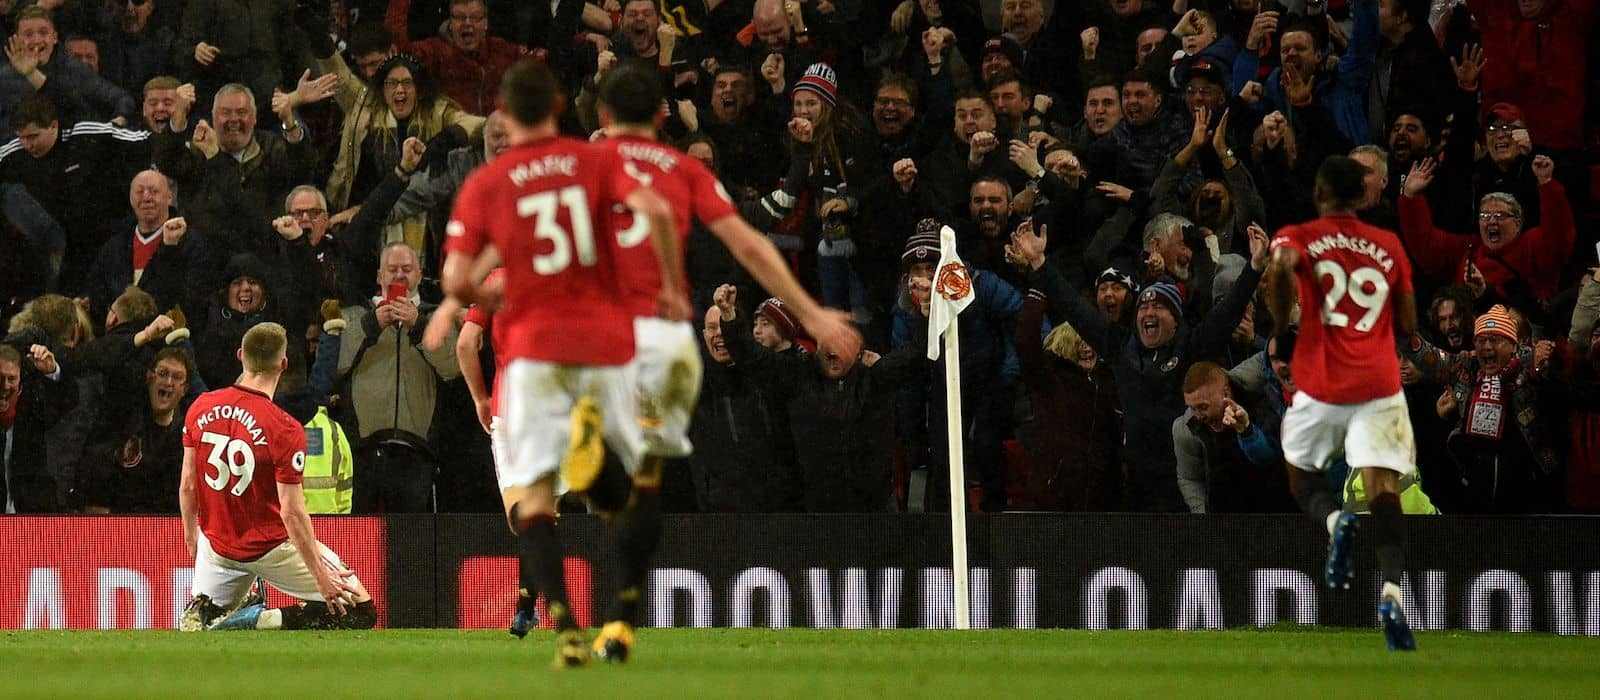 Manchester United's derby win shows the swagger is back